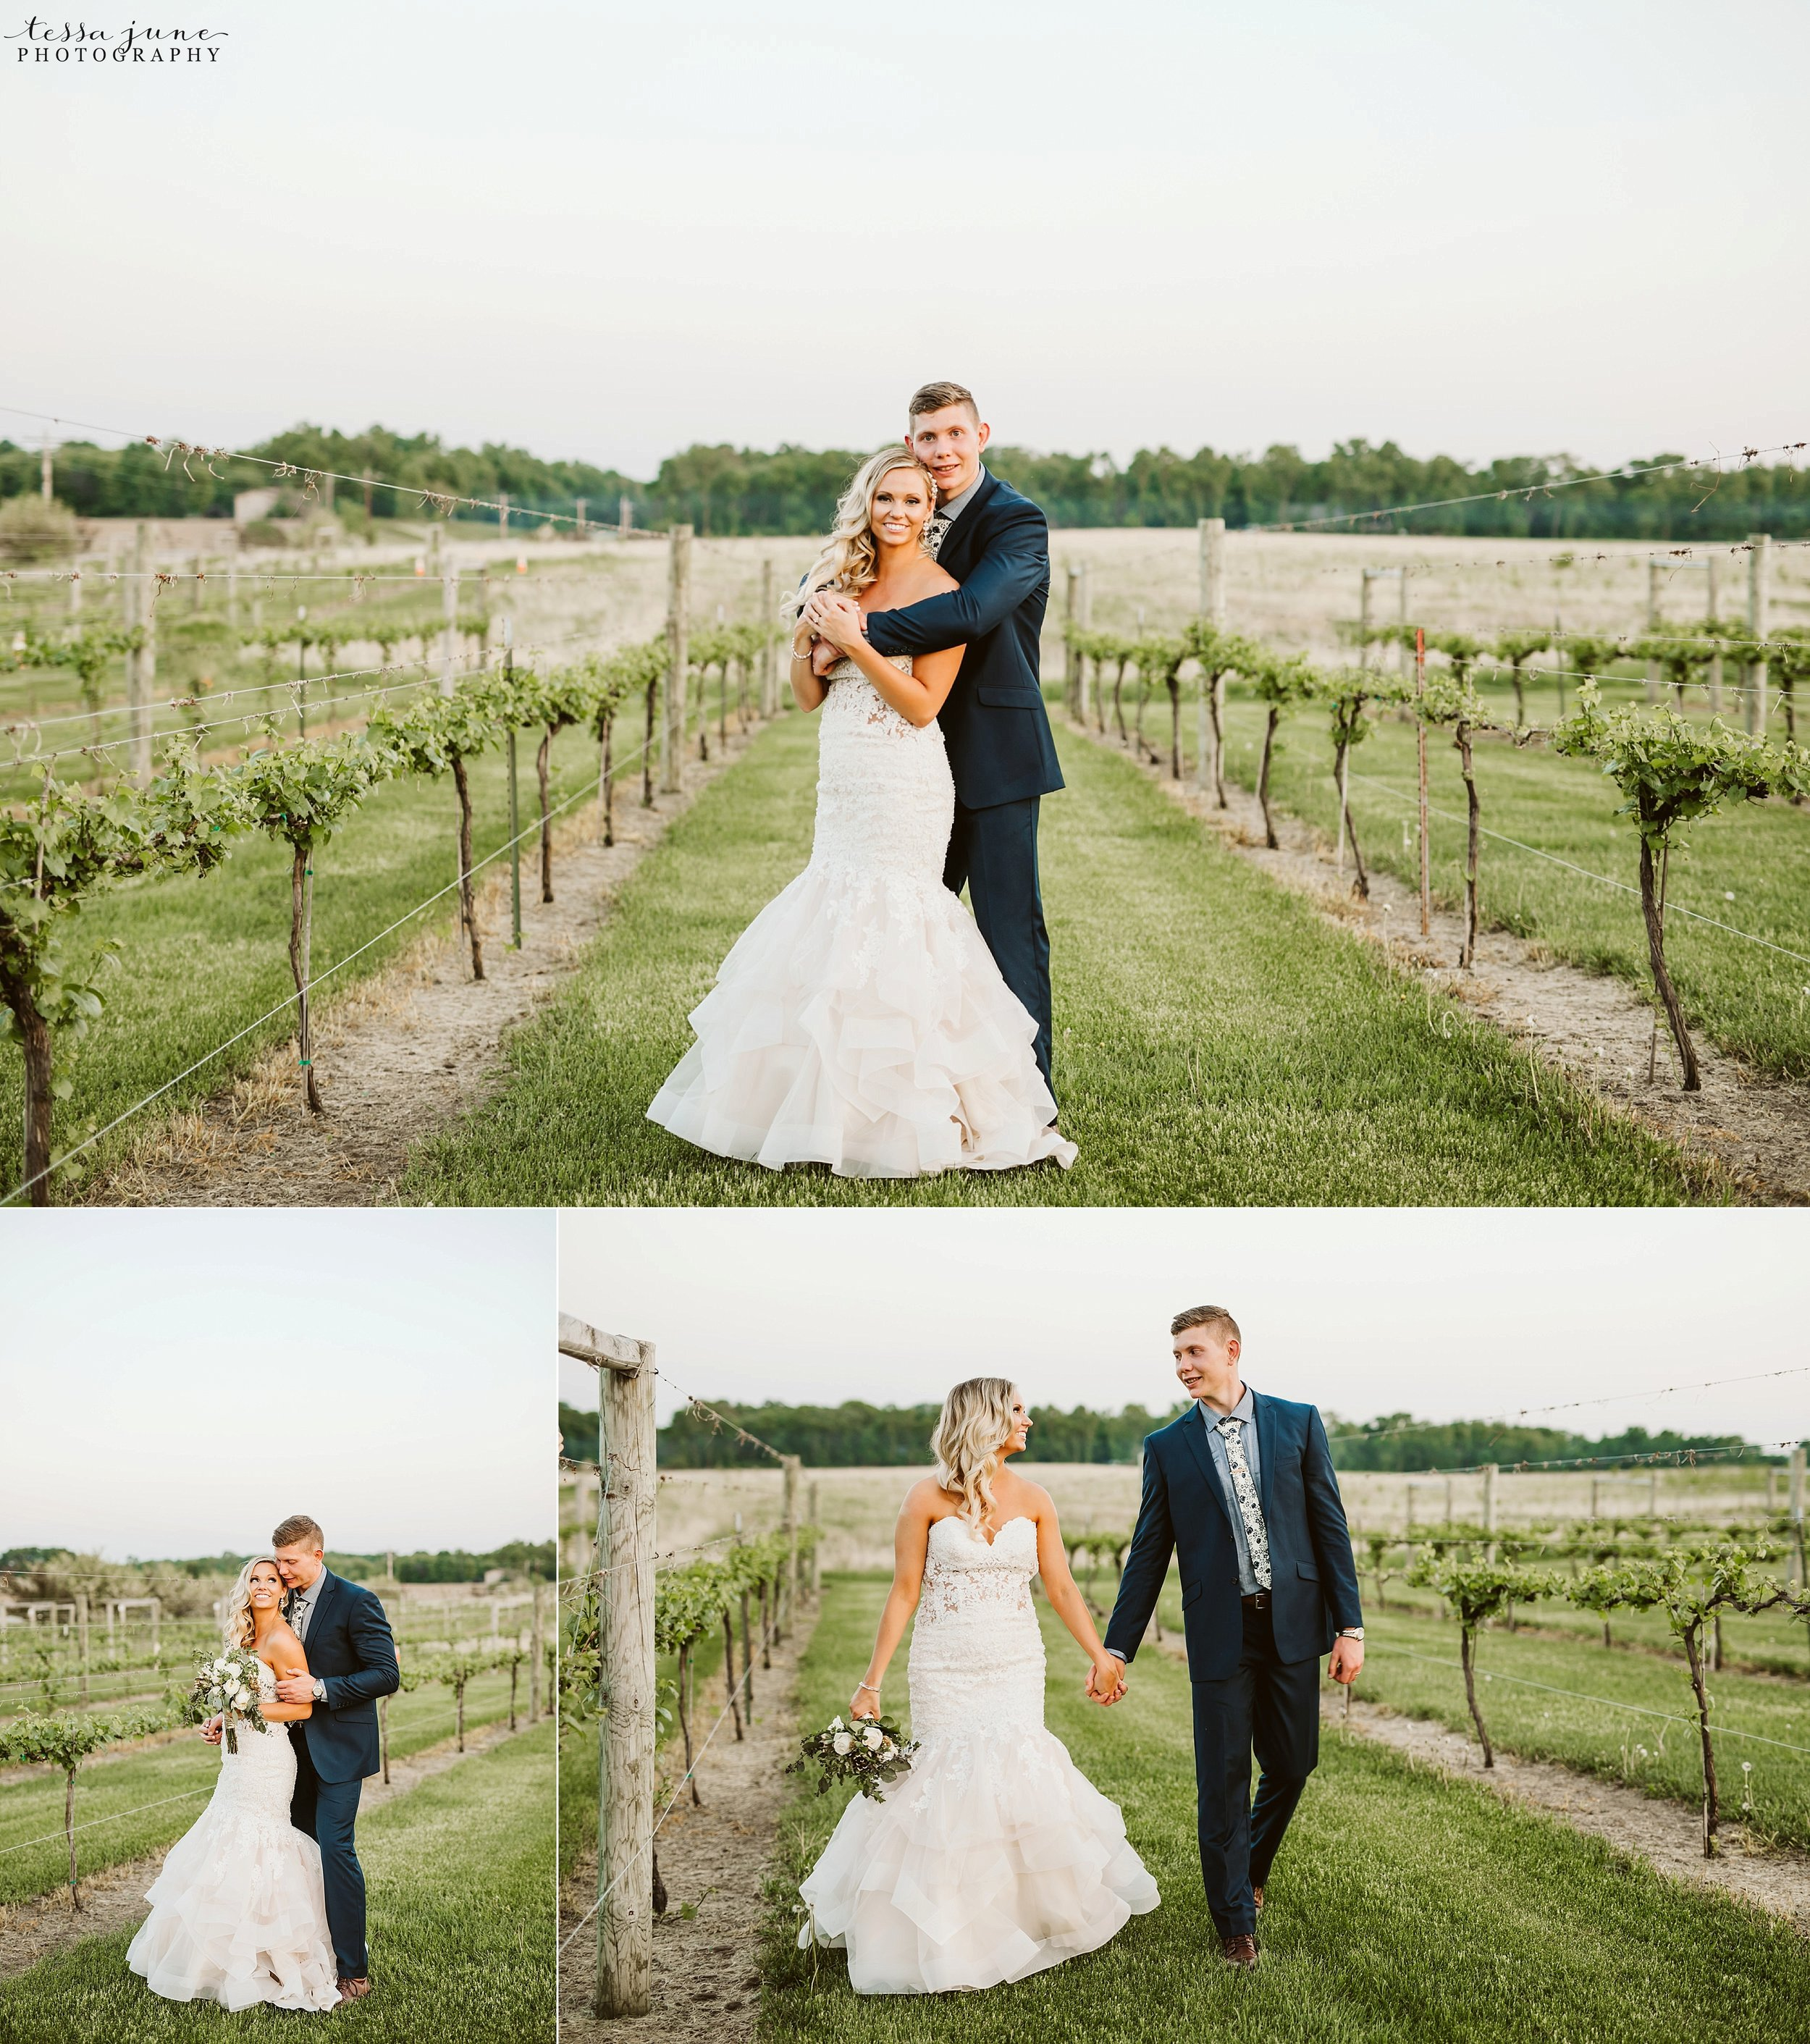 carlos-creek-winery-wedding-alexandria-minnesota-glam-elegant-floral-158.jpg